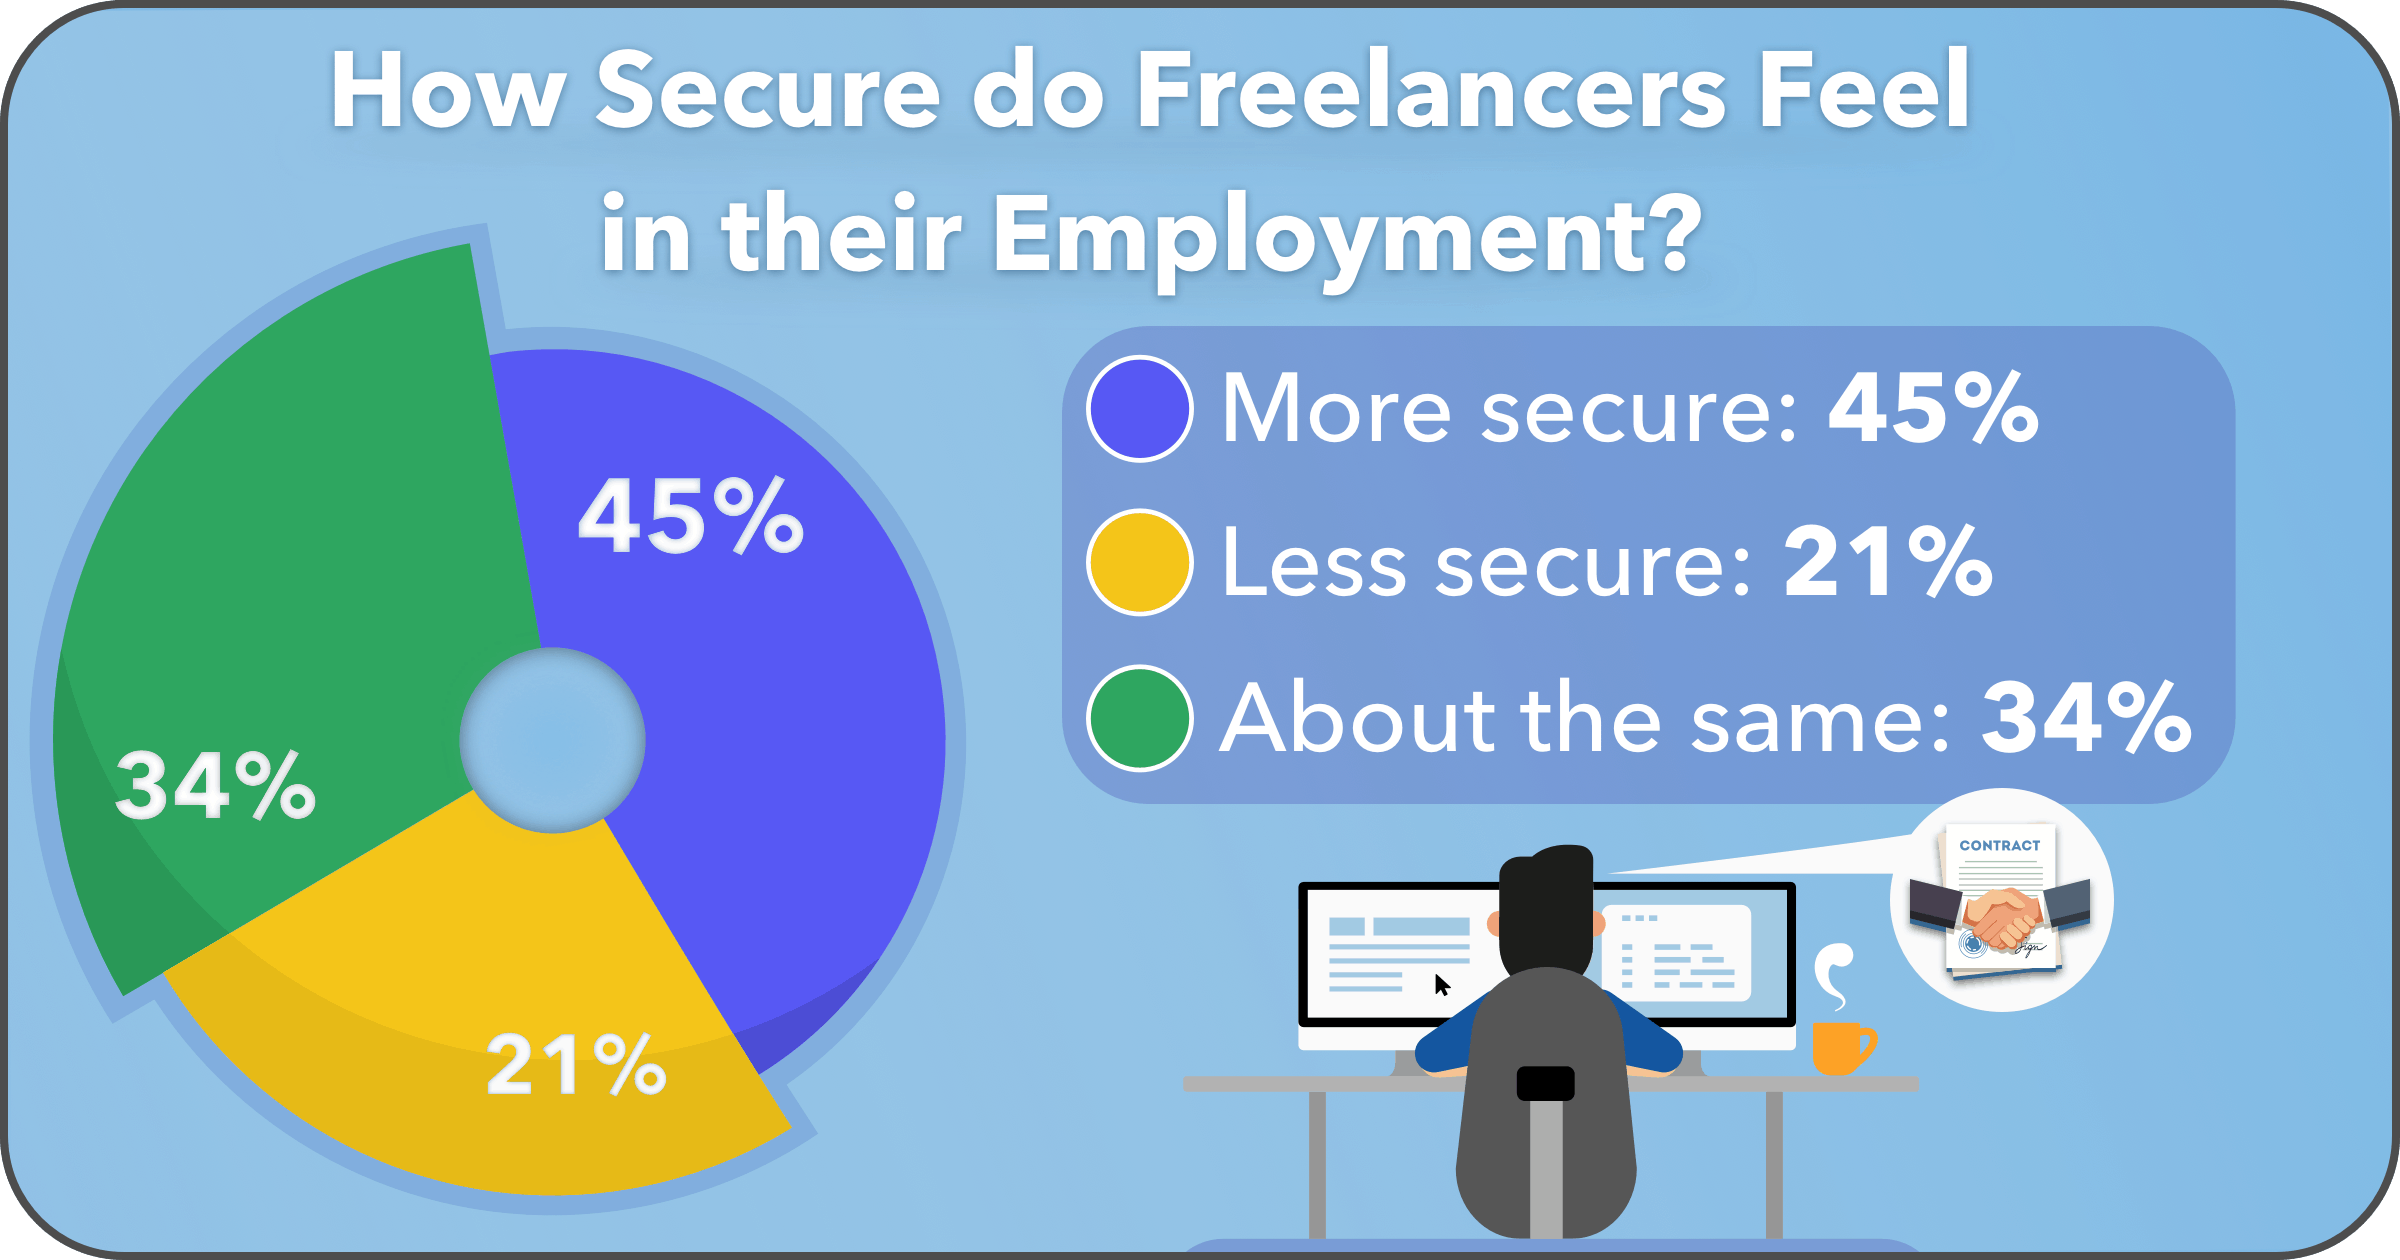 Many Freelancers Feel More Secure in Their Employment